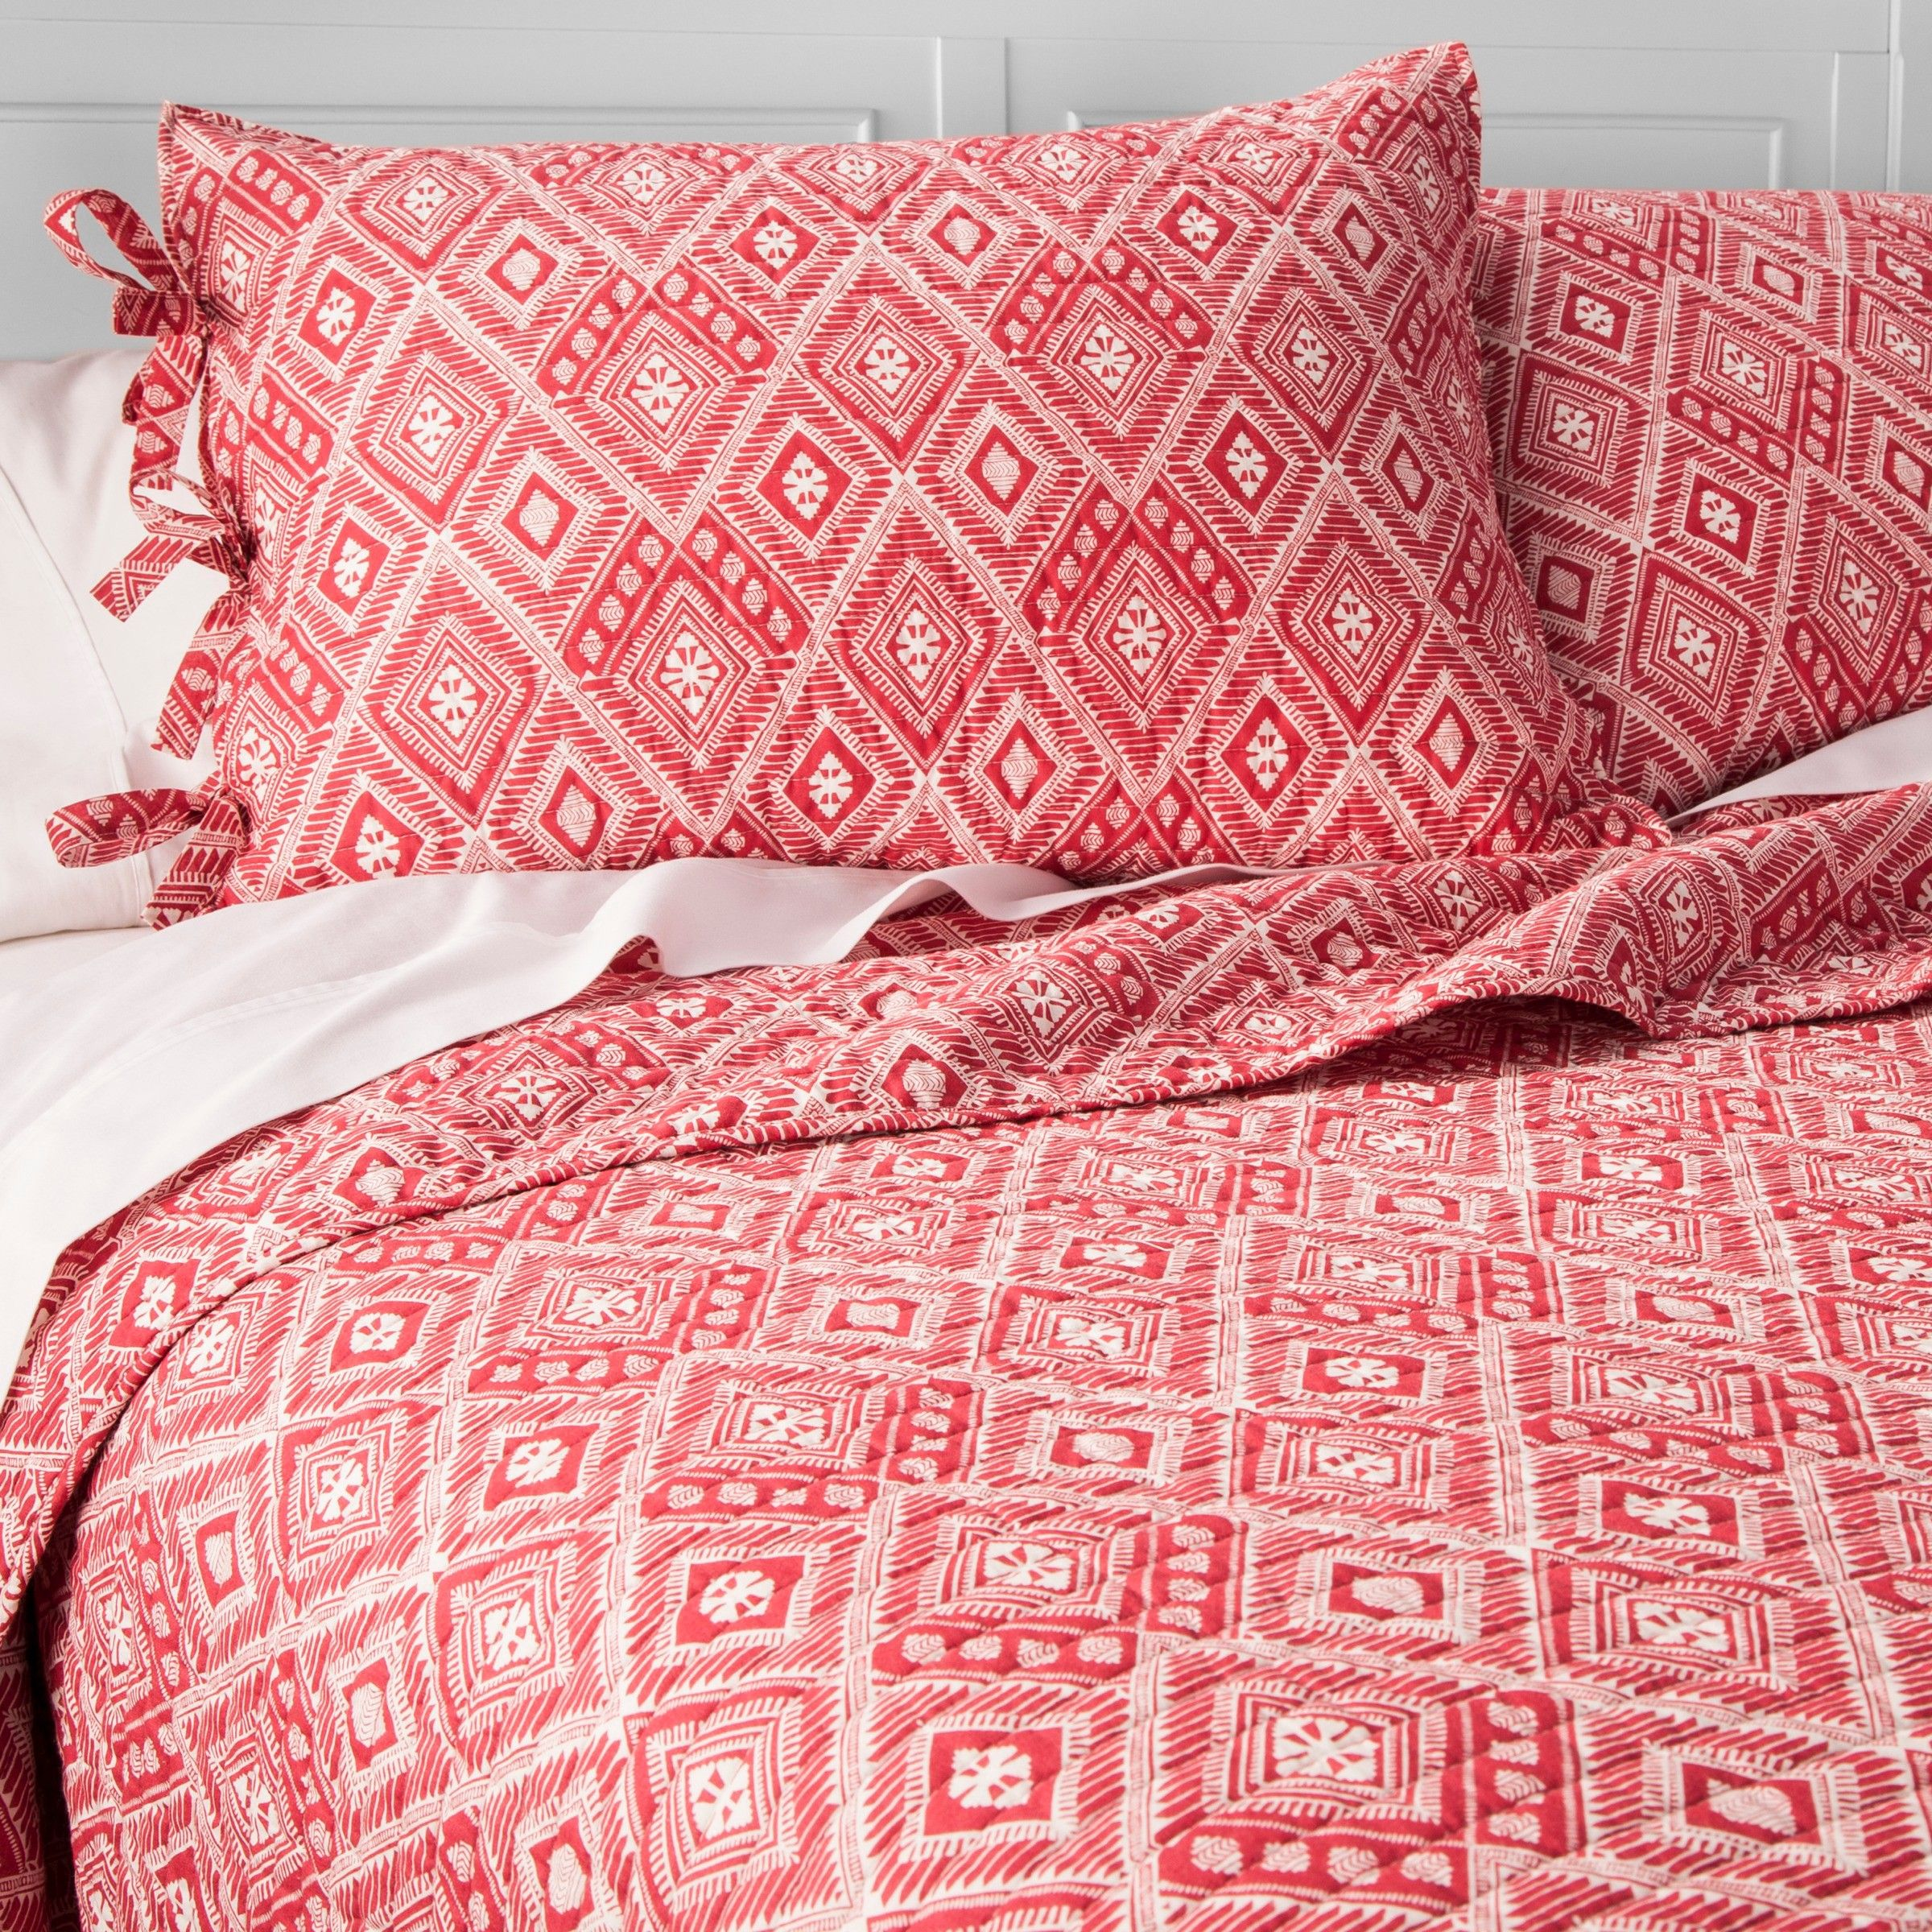 The Mudhut Moroq Quilt & Sham Set is inspired by traditional North African textiles. This quilt set comes with a full/queen quilt and two matching pillow shams. The two-tone color palette makes this lively print fit in with various pieces, and this 100% cotton bedding set feels fantastic against the skin.